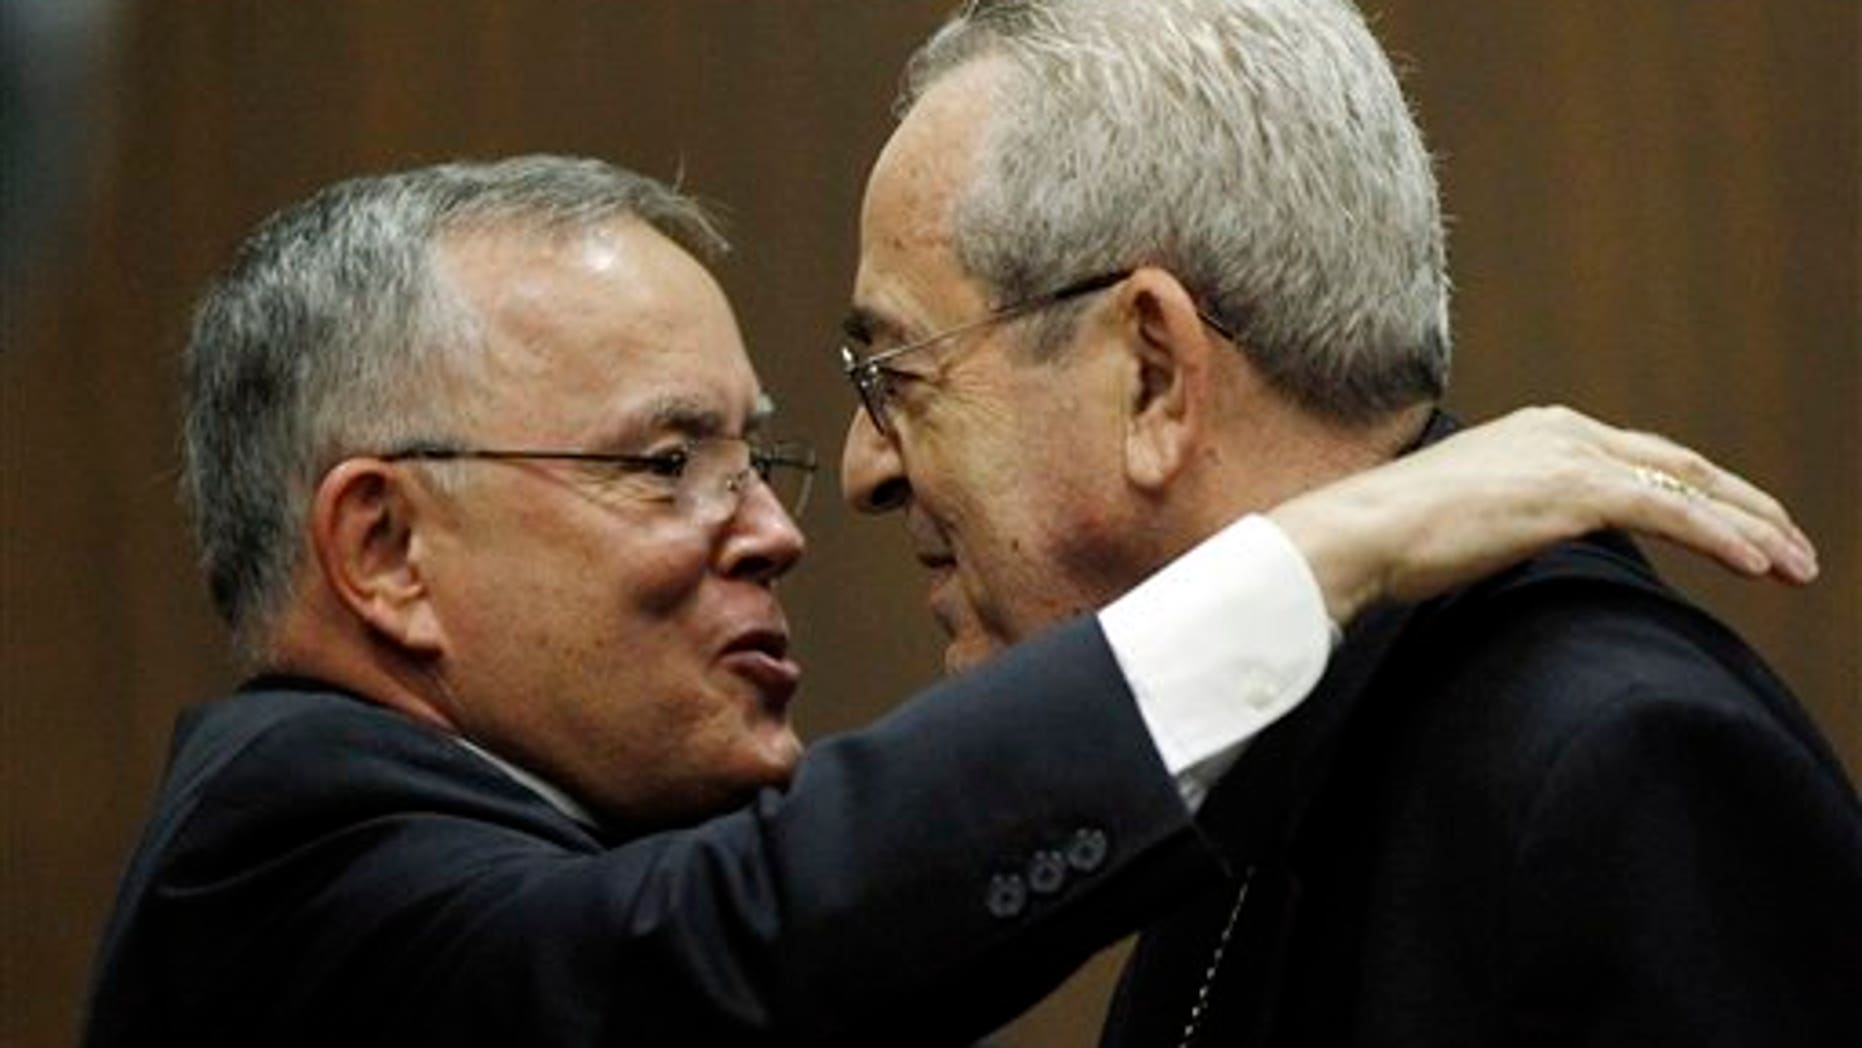 July 19: Denver Archbishop Charles Chaput, left, and Cardinal Justin Rigali embrace during a news conference in Philadelphia.